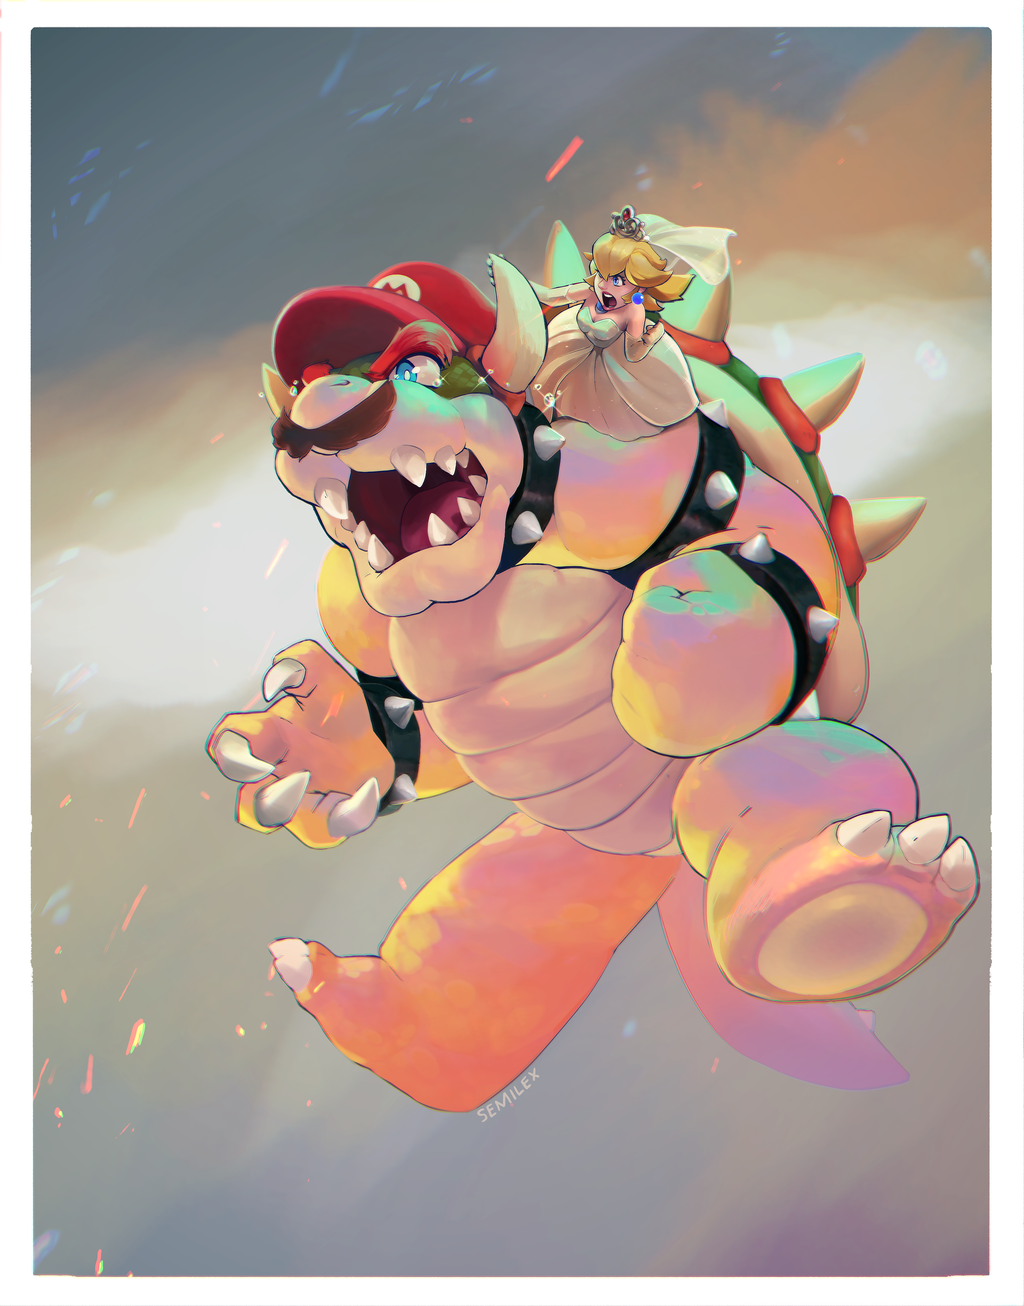 1boy blonde_hair bowser dress facial_hair fangs hat highres mario mario_(series) midair monster_boy mustache open_mouth possessed princess_peach semilex spiked_shell spoilers super_mario_bros. super_mario_odyssey tears